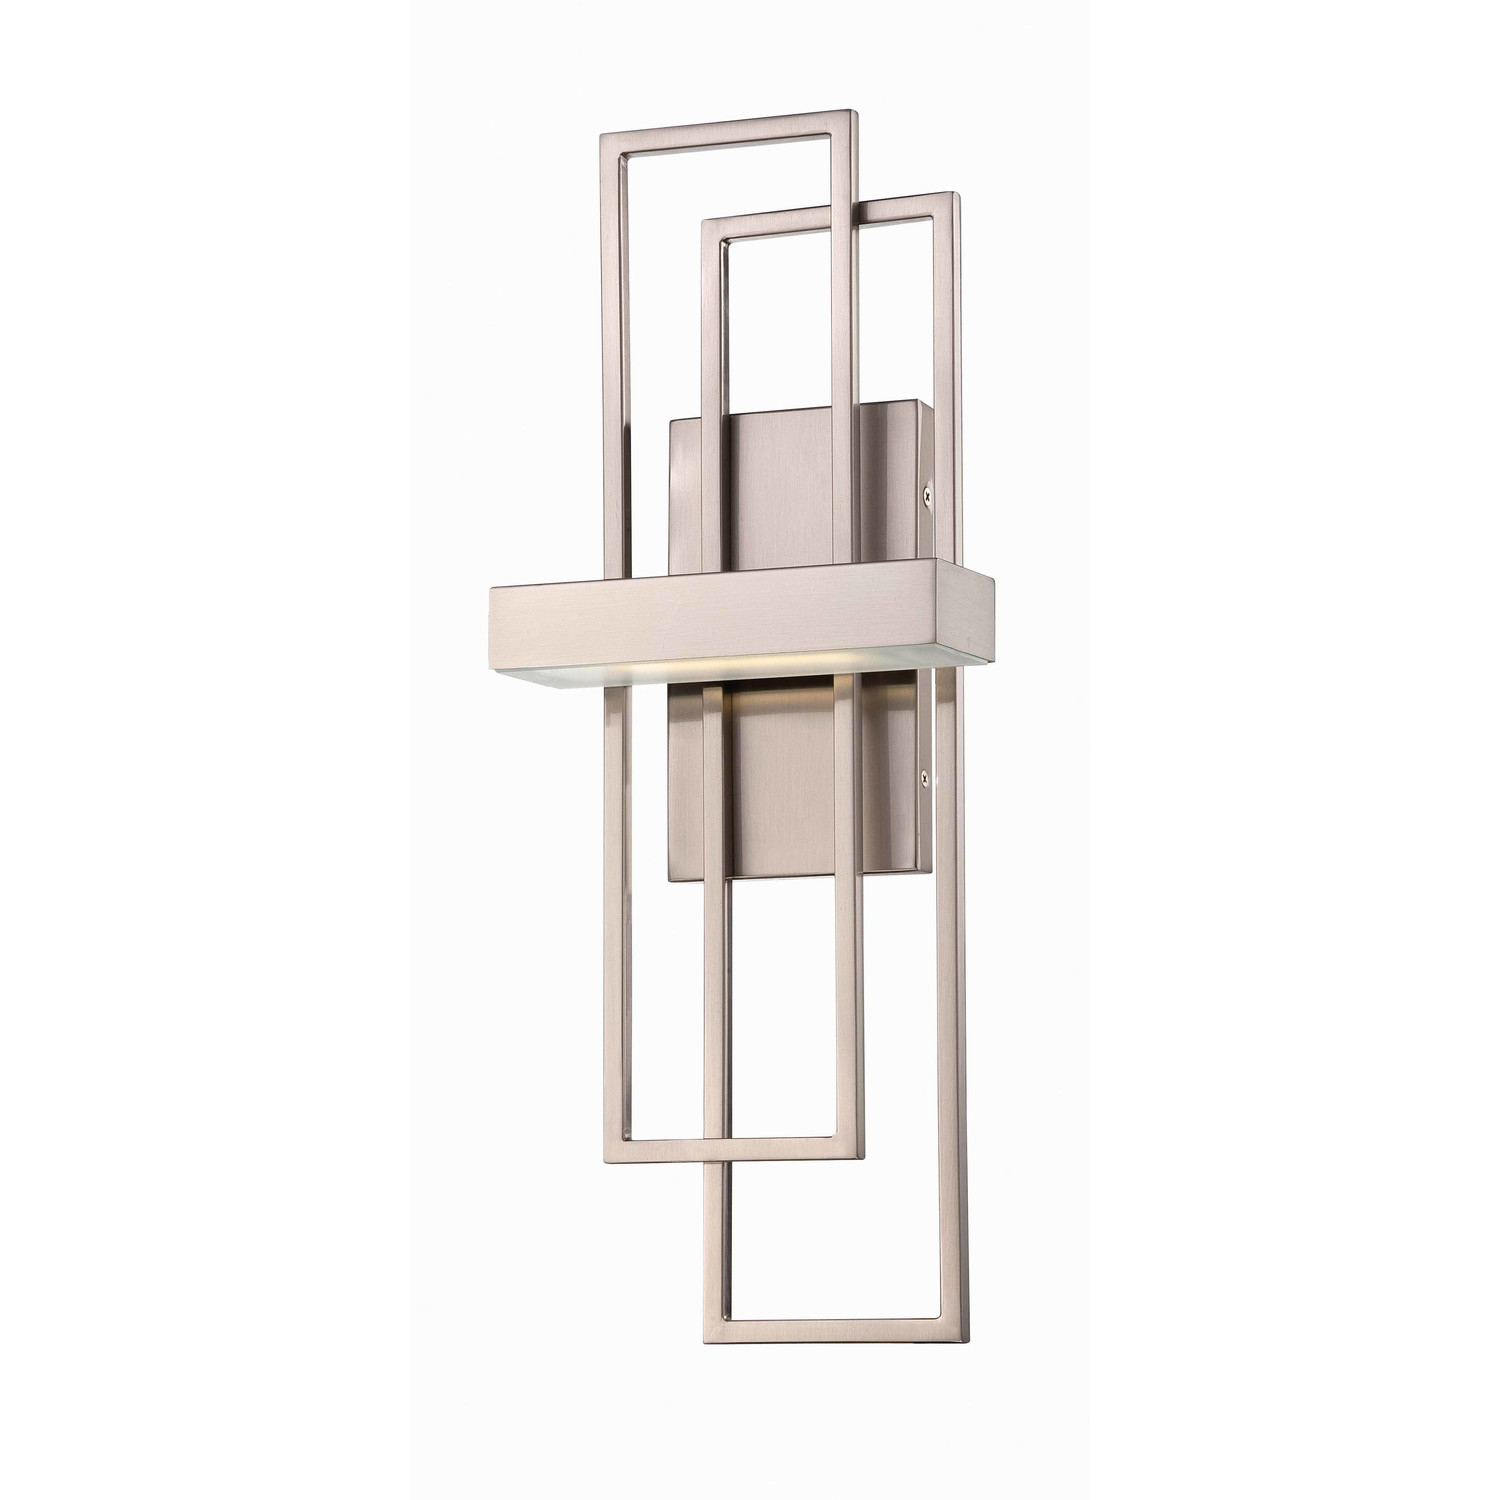 Cozy Nuvo Lighting In Stylish Design For Home Lighting Ideas: Chic Nuvo Lighting Castille 1 Light Wall Sconce For Home Lighting Ideas